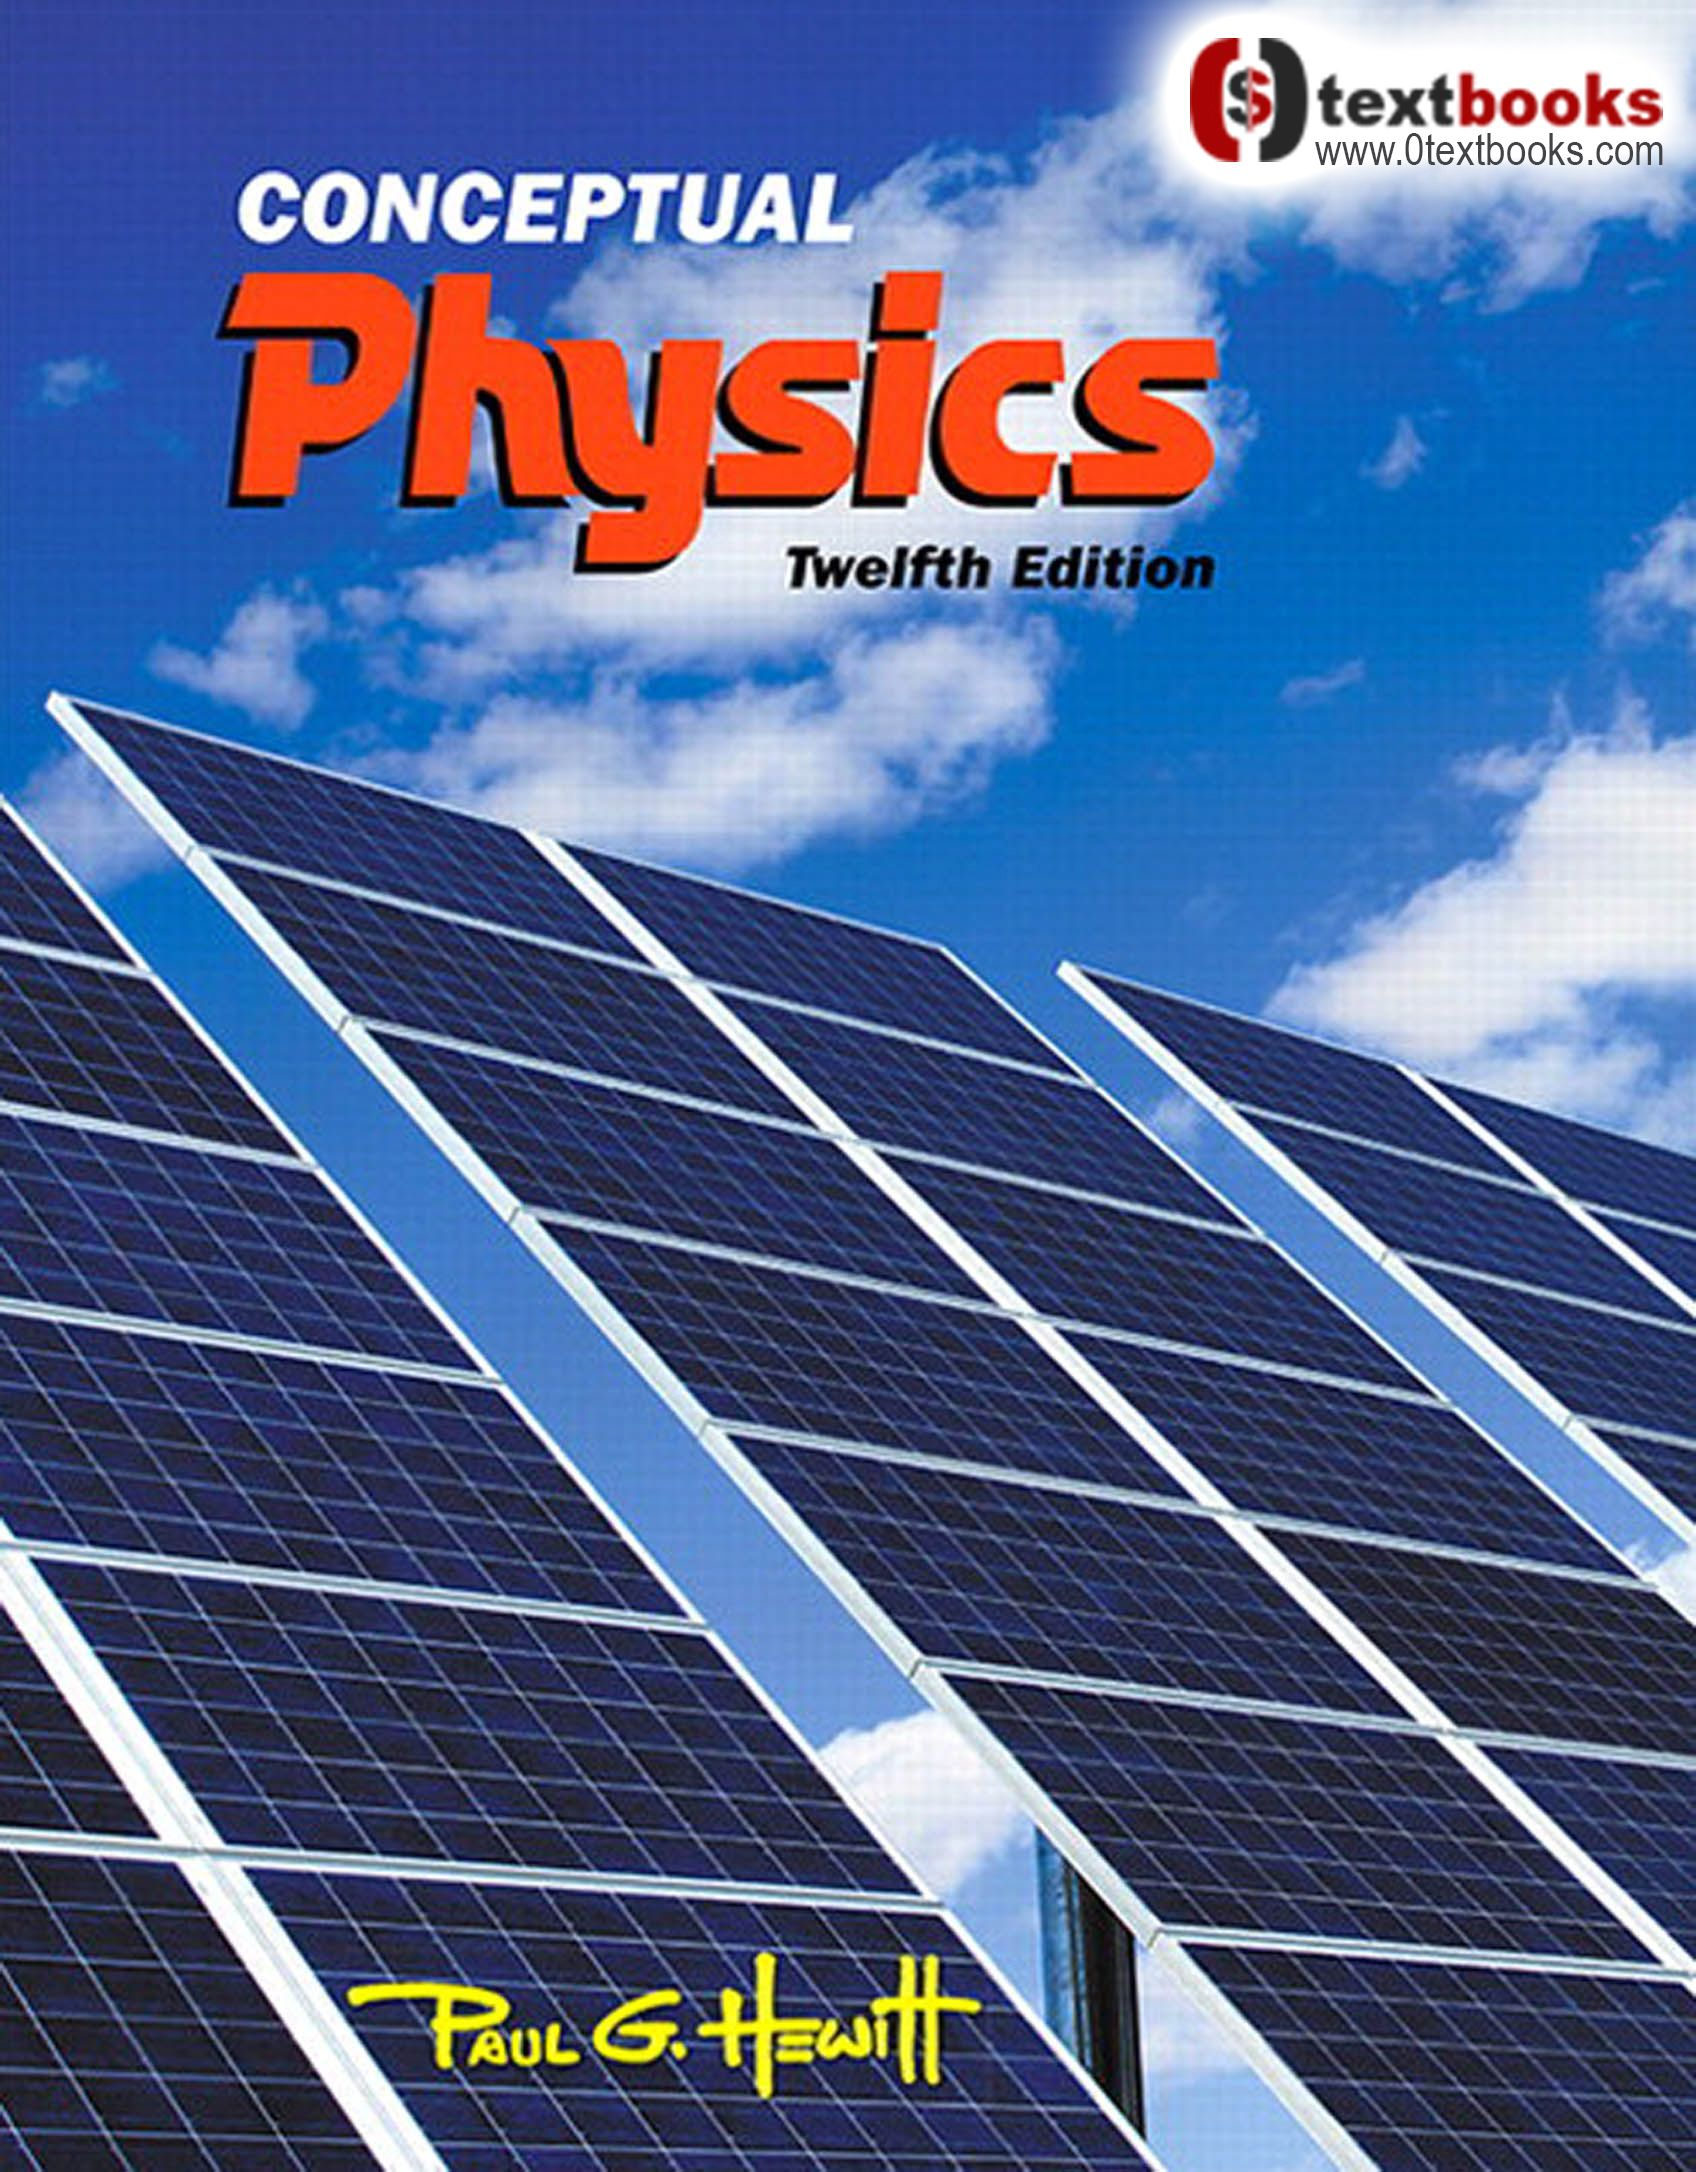 Physics Textbook Pdf Free